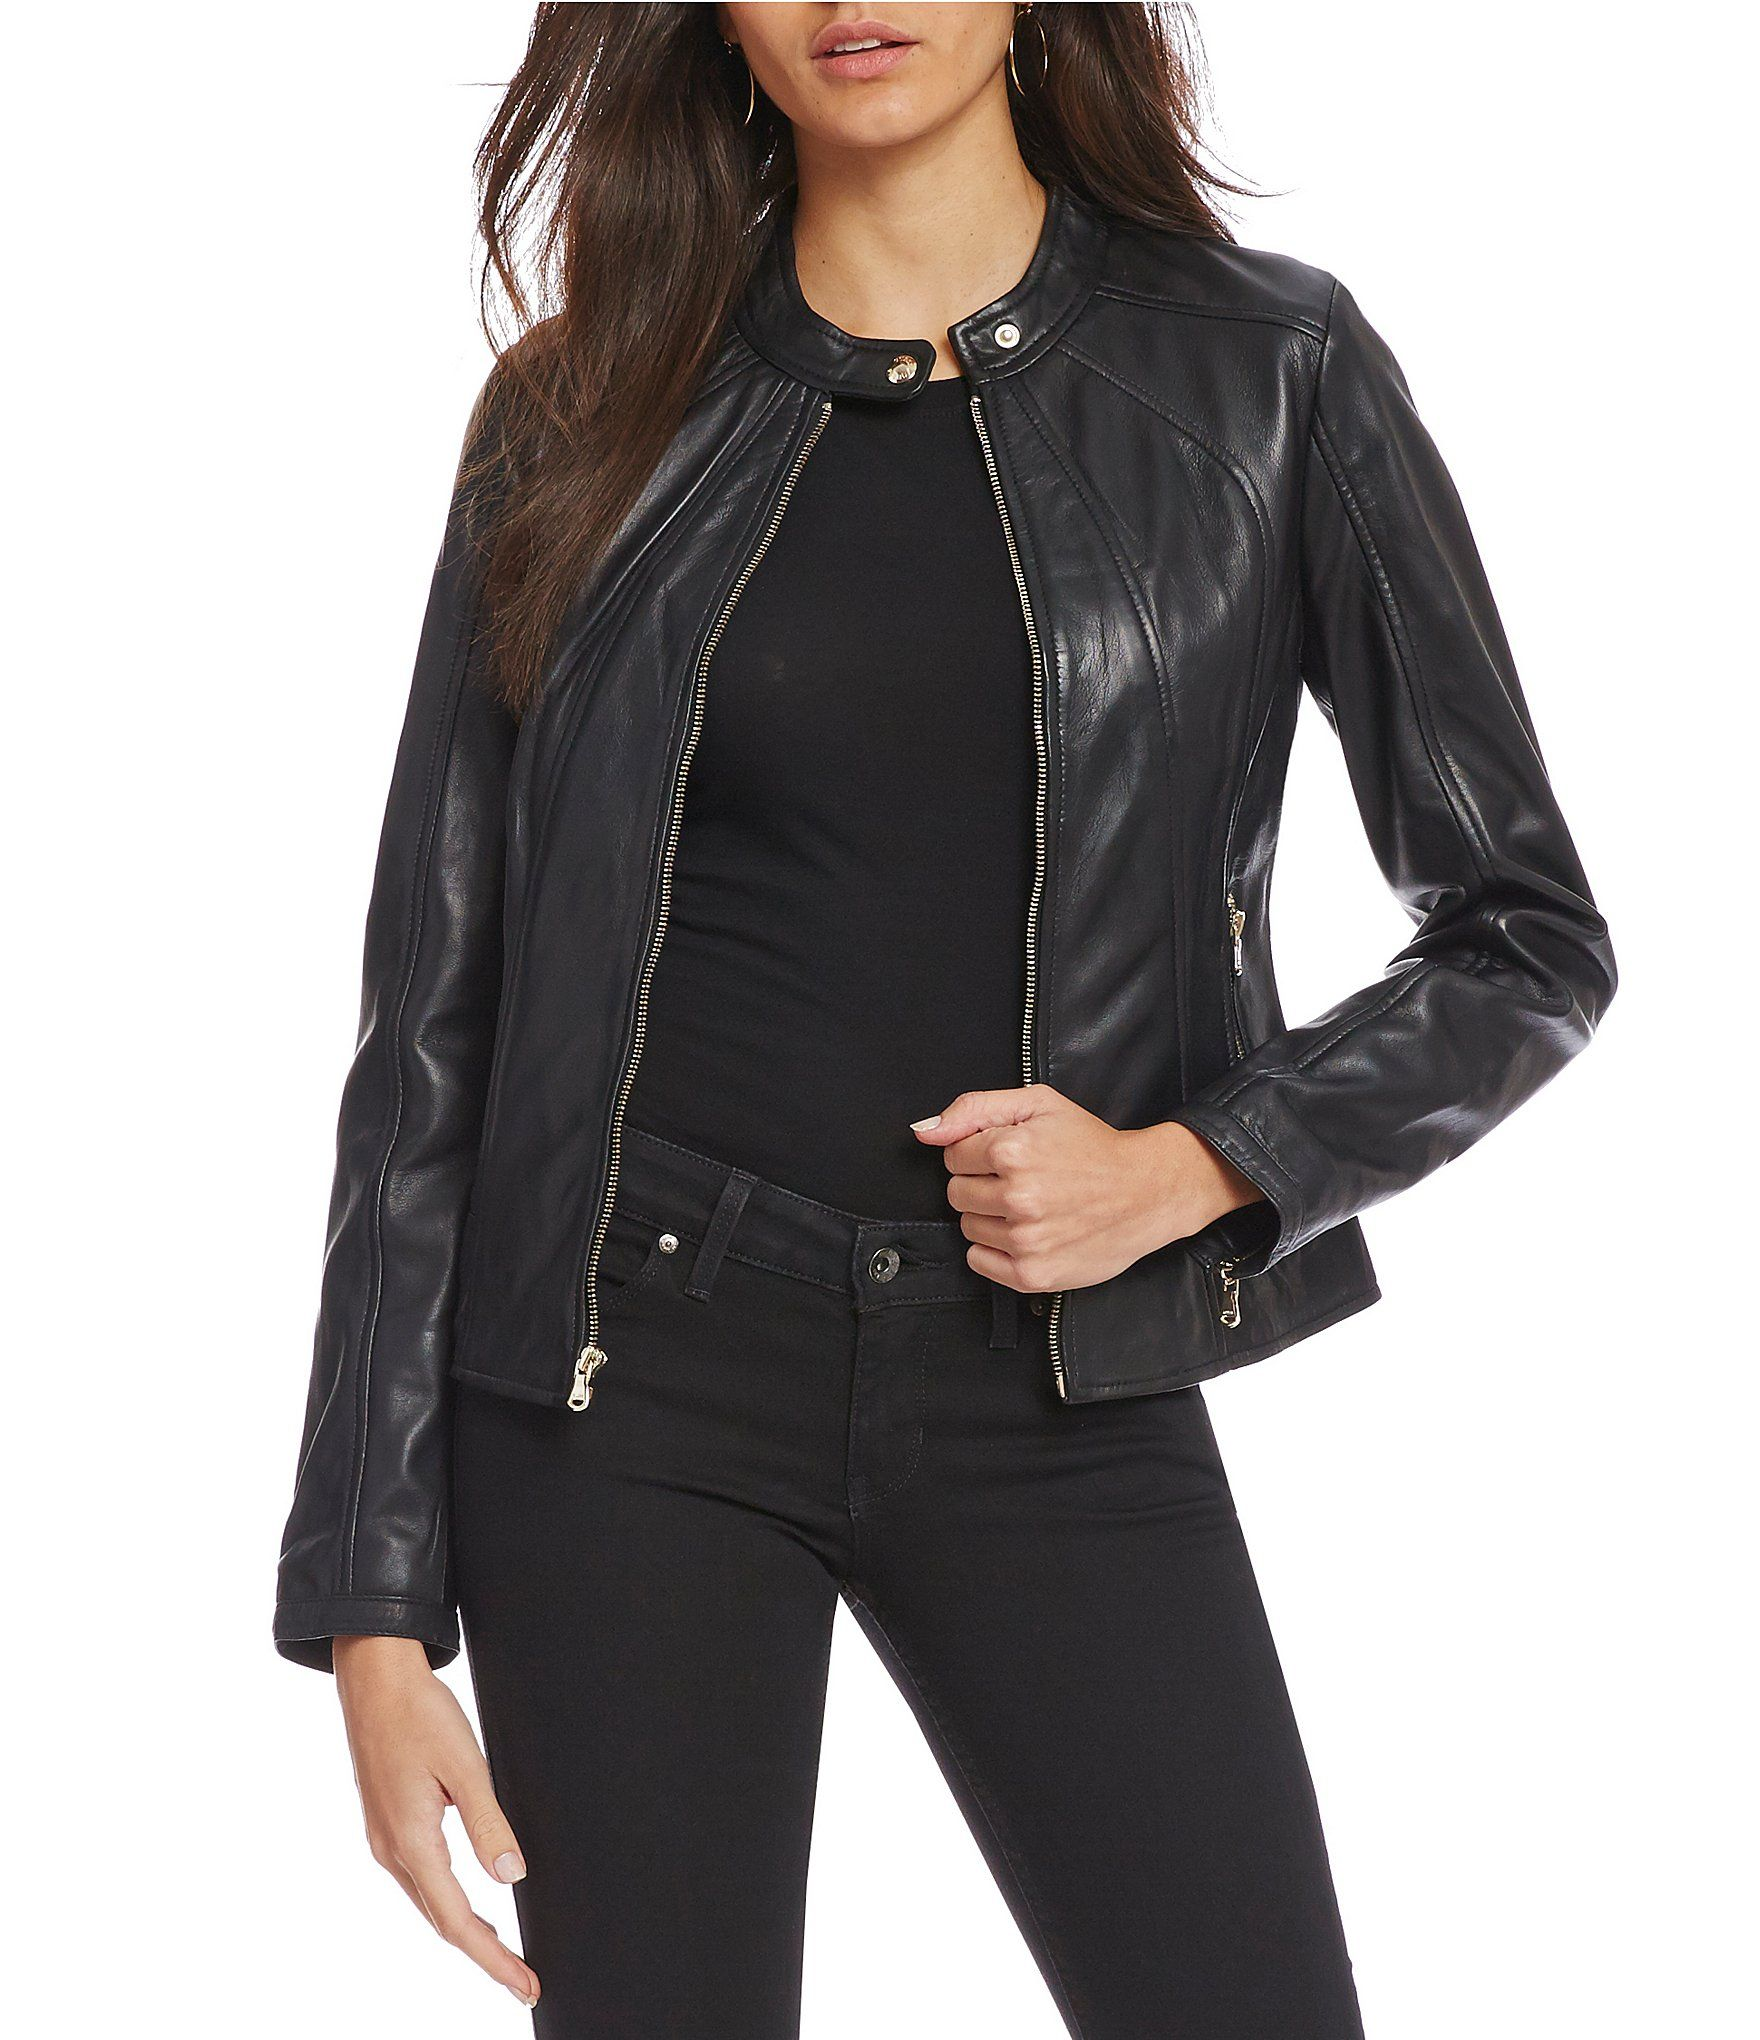 b9ca92c7e051 Shop for Guess Scuba Genuine Leather Jacket at Dillards.com. Visit  Dillards.com to find clothing